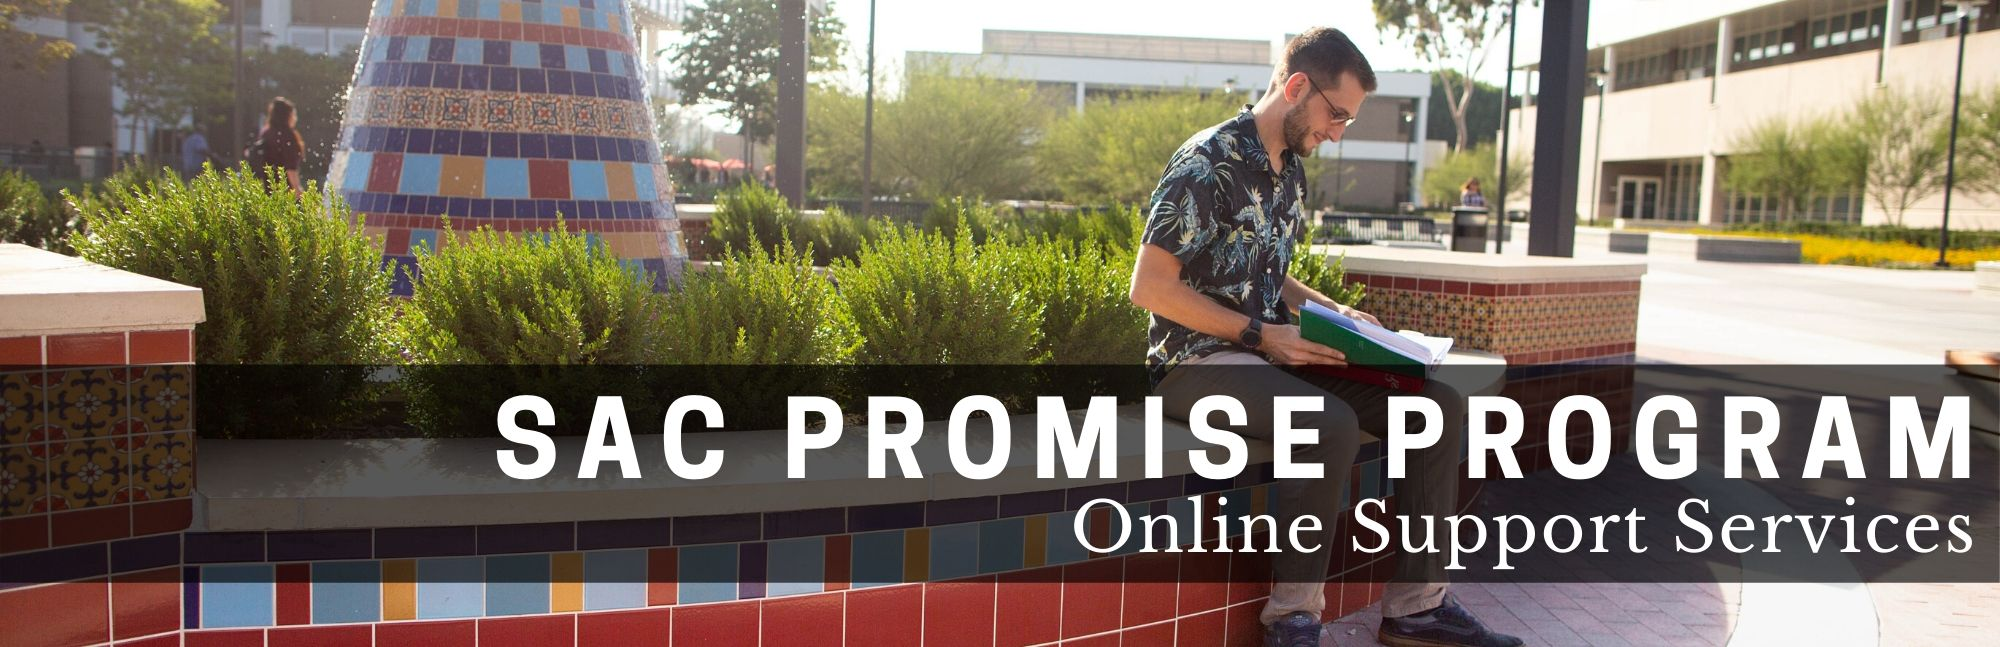 SAC Promise Program Online Support Services